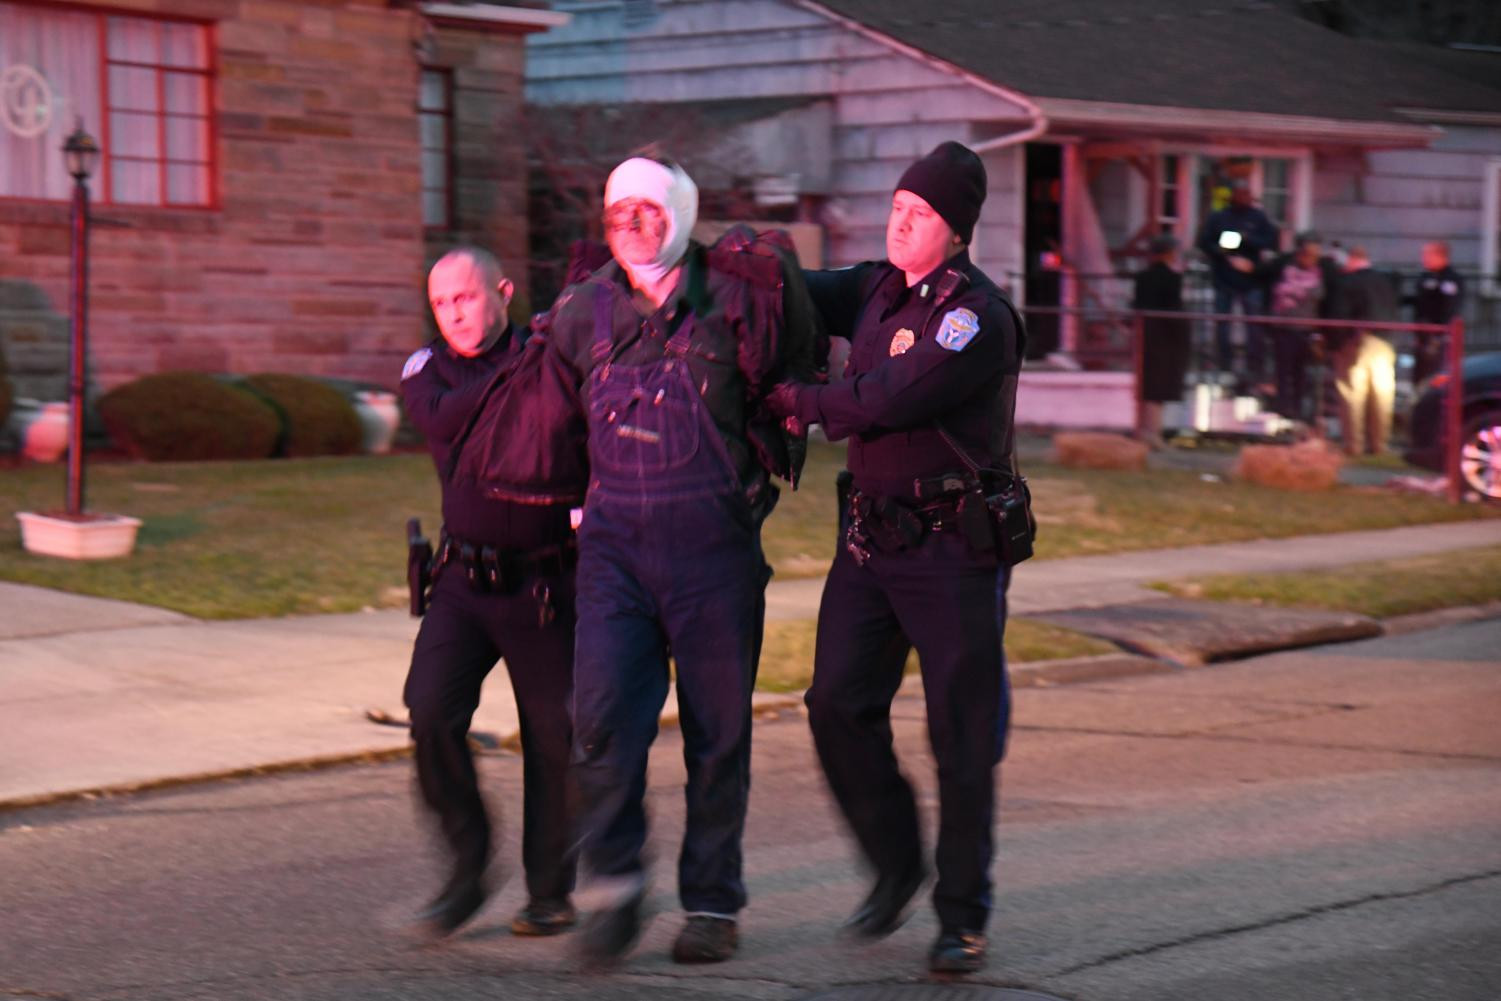 Officers escort Michael Perdue to a police cruiser in handcuffs.